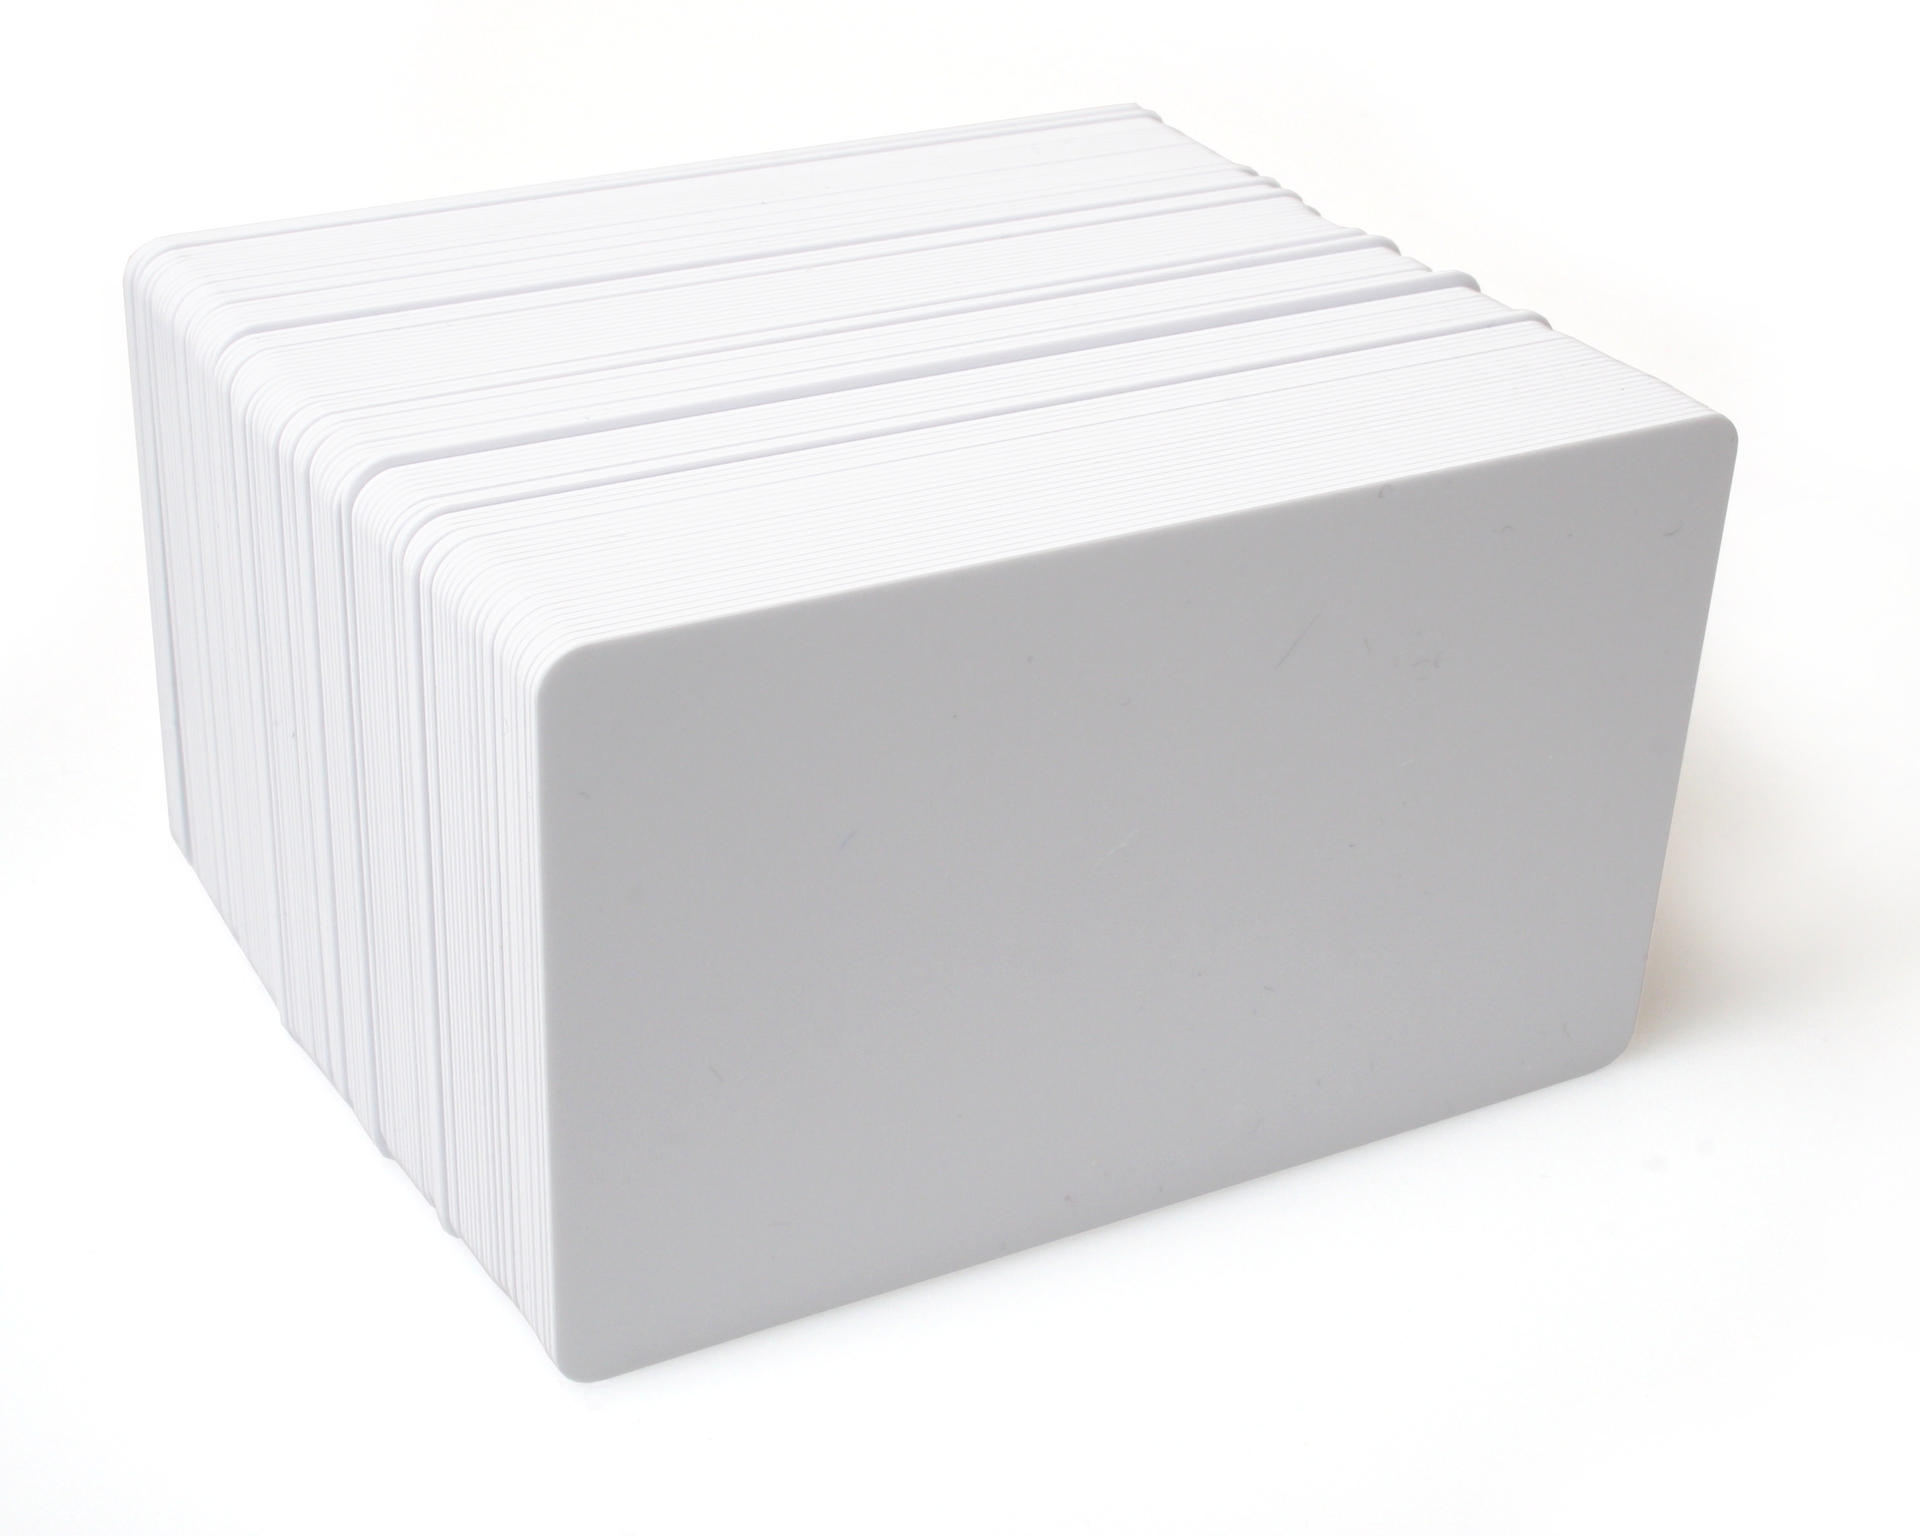 Dyestar Blank White Plastic Cards | Low Prices At Digital ID